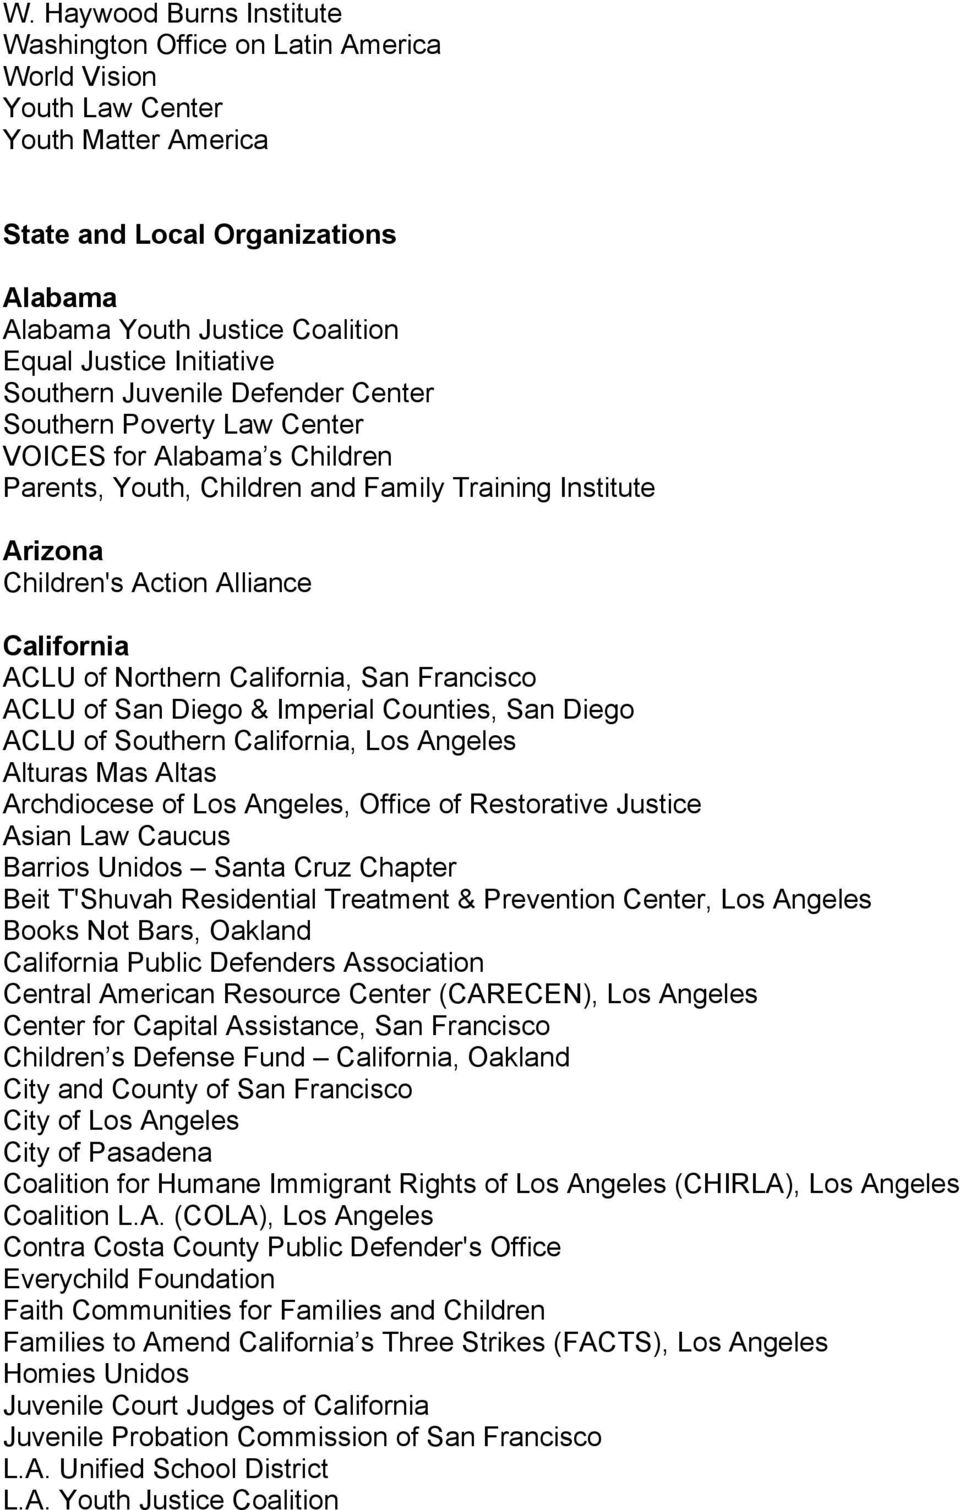 California ACLU of Northern California, San Francisco ACLU of San Diego & Imperial Counties, San Diego ACLU of Southern California, Los Angeles Alturas Mas Altas Archdiocese of Los Angeles, Office of